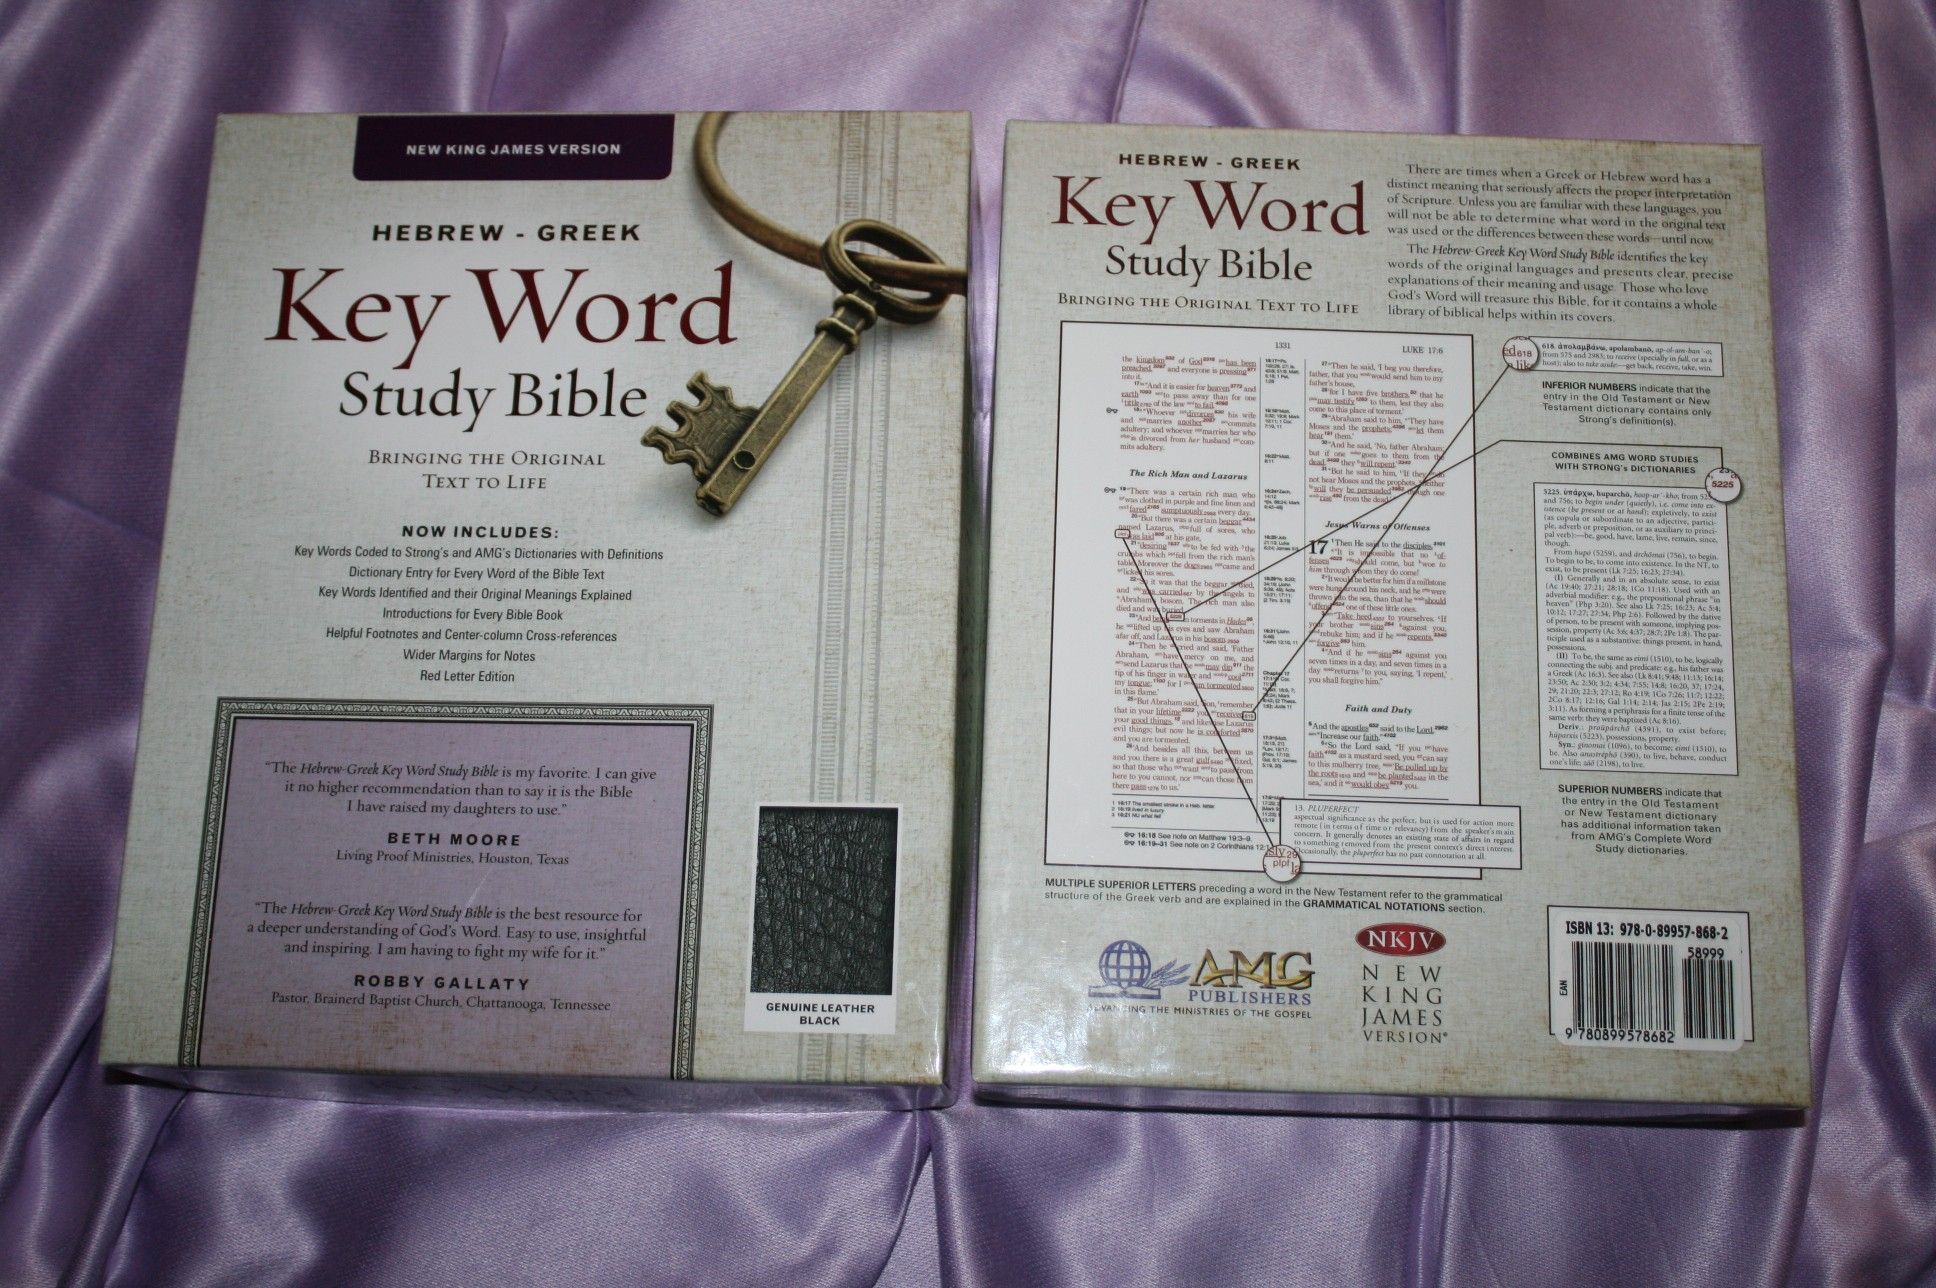 Hebrew Greek Keyword Study Bible Nkjv Review Bible